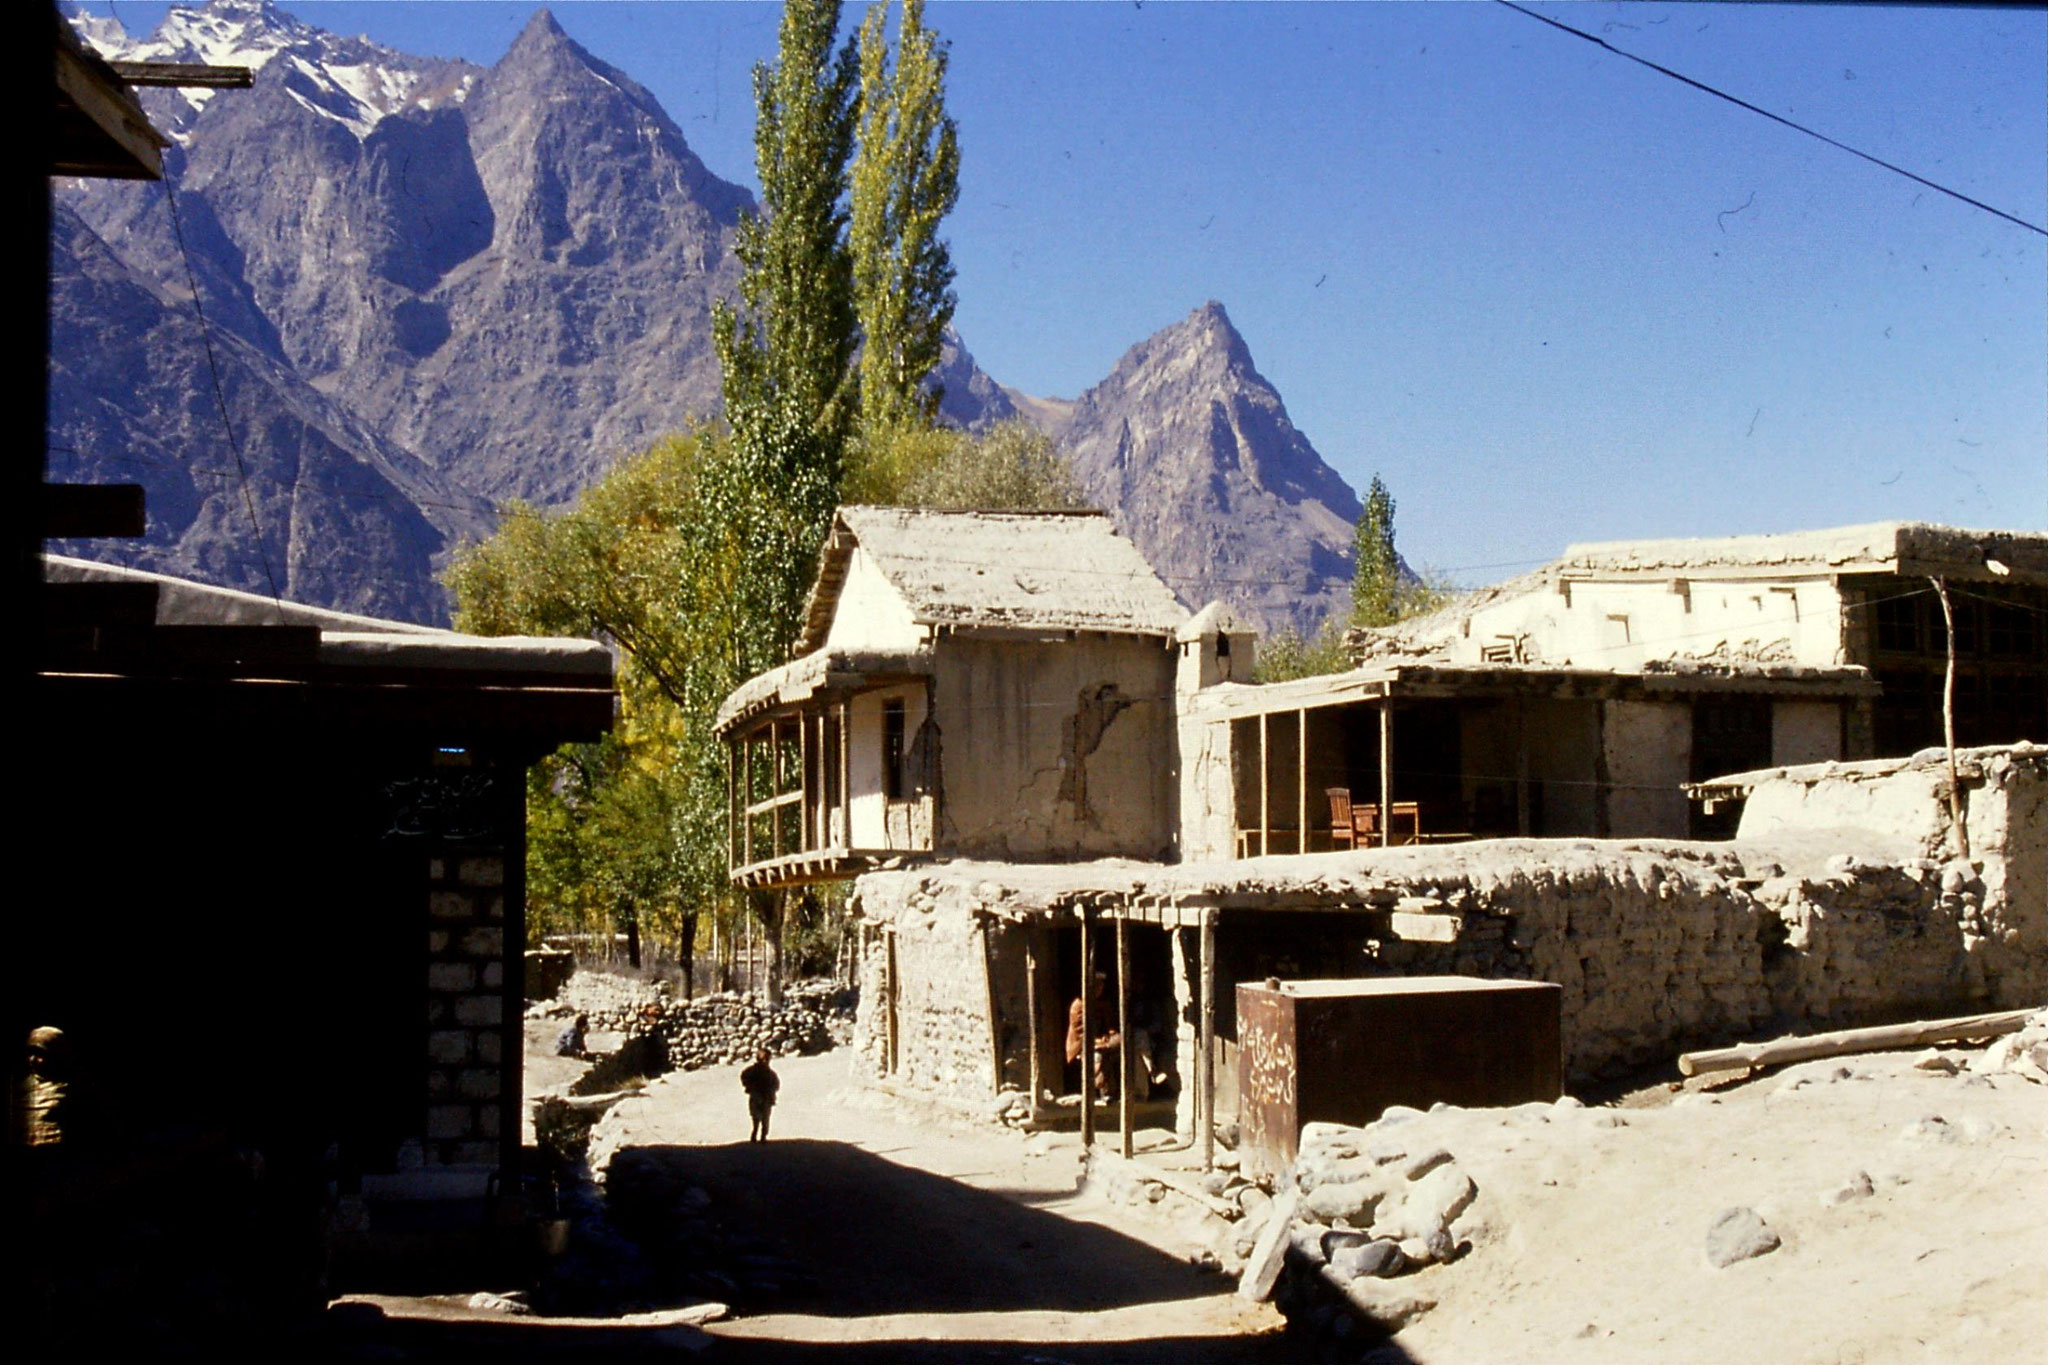 20/10/1989: 12: Houses in Shigar